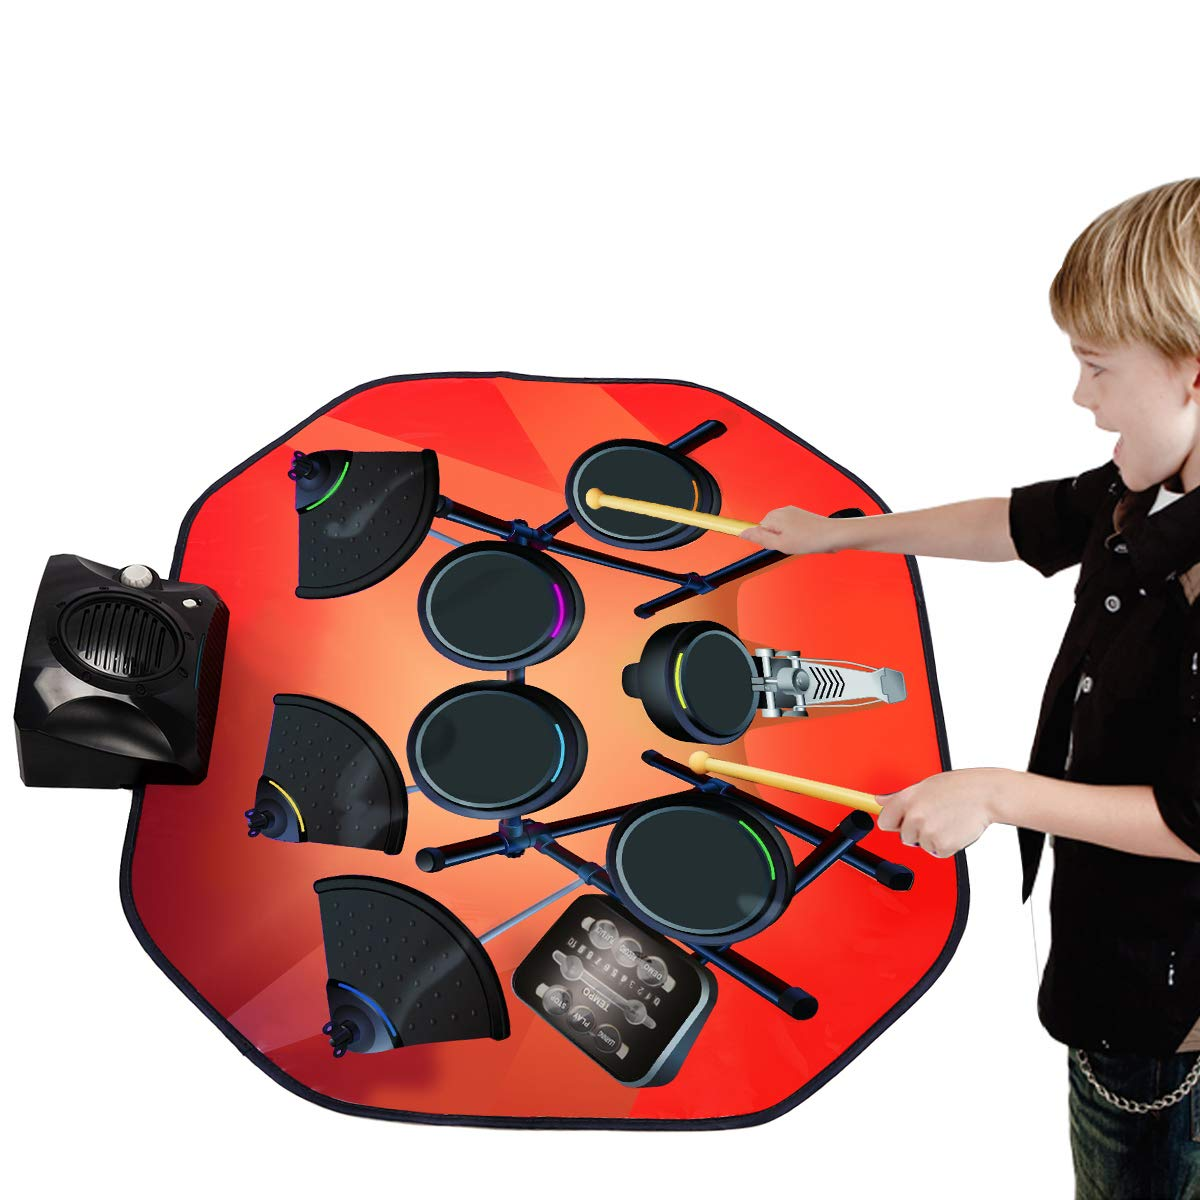 Costzon Electronic Drum Mat, 8 Keys Glowing Music Mat with LED Lights,MP3 Cable, Drumsticks, Support Play - Study-Record - Playback - Demo 5 Modes, Volume Control by Costzon (Image #7)